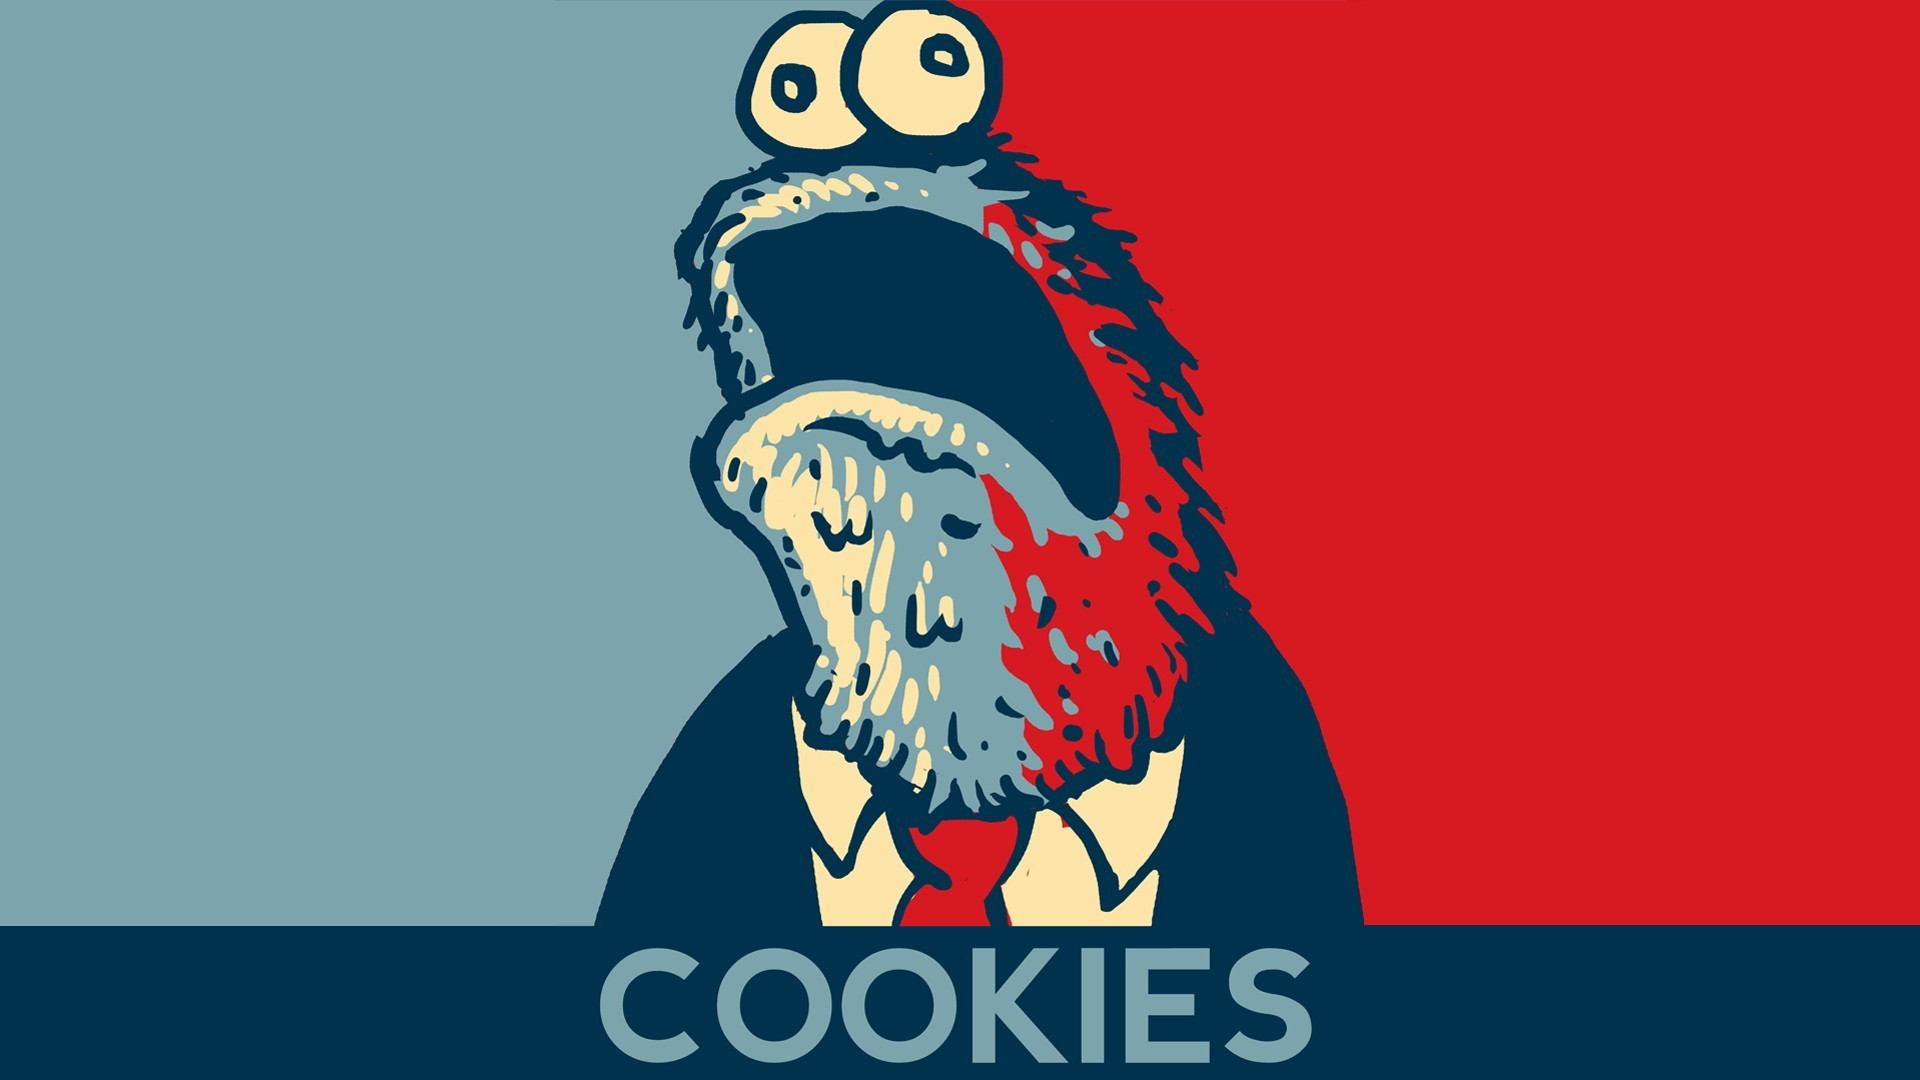 Cookie Monster Wallpaper Hd 70 Images